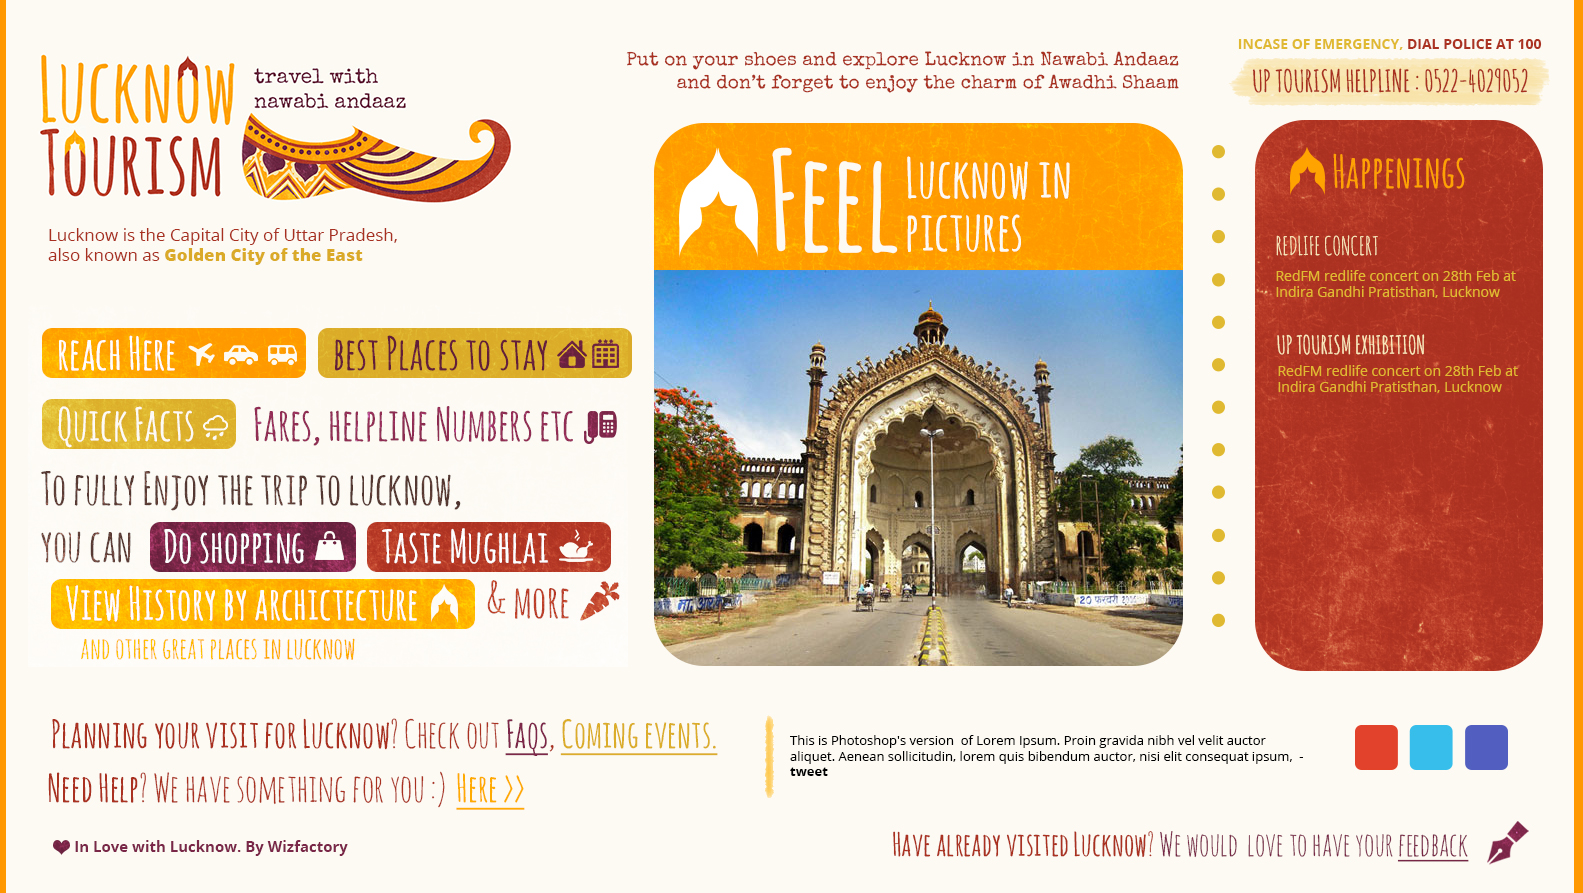 lucknow-tourism-website